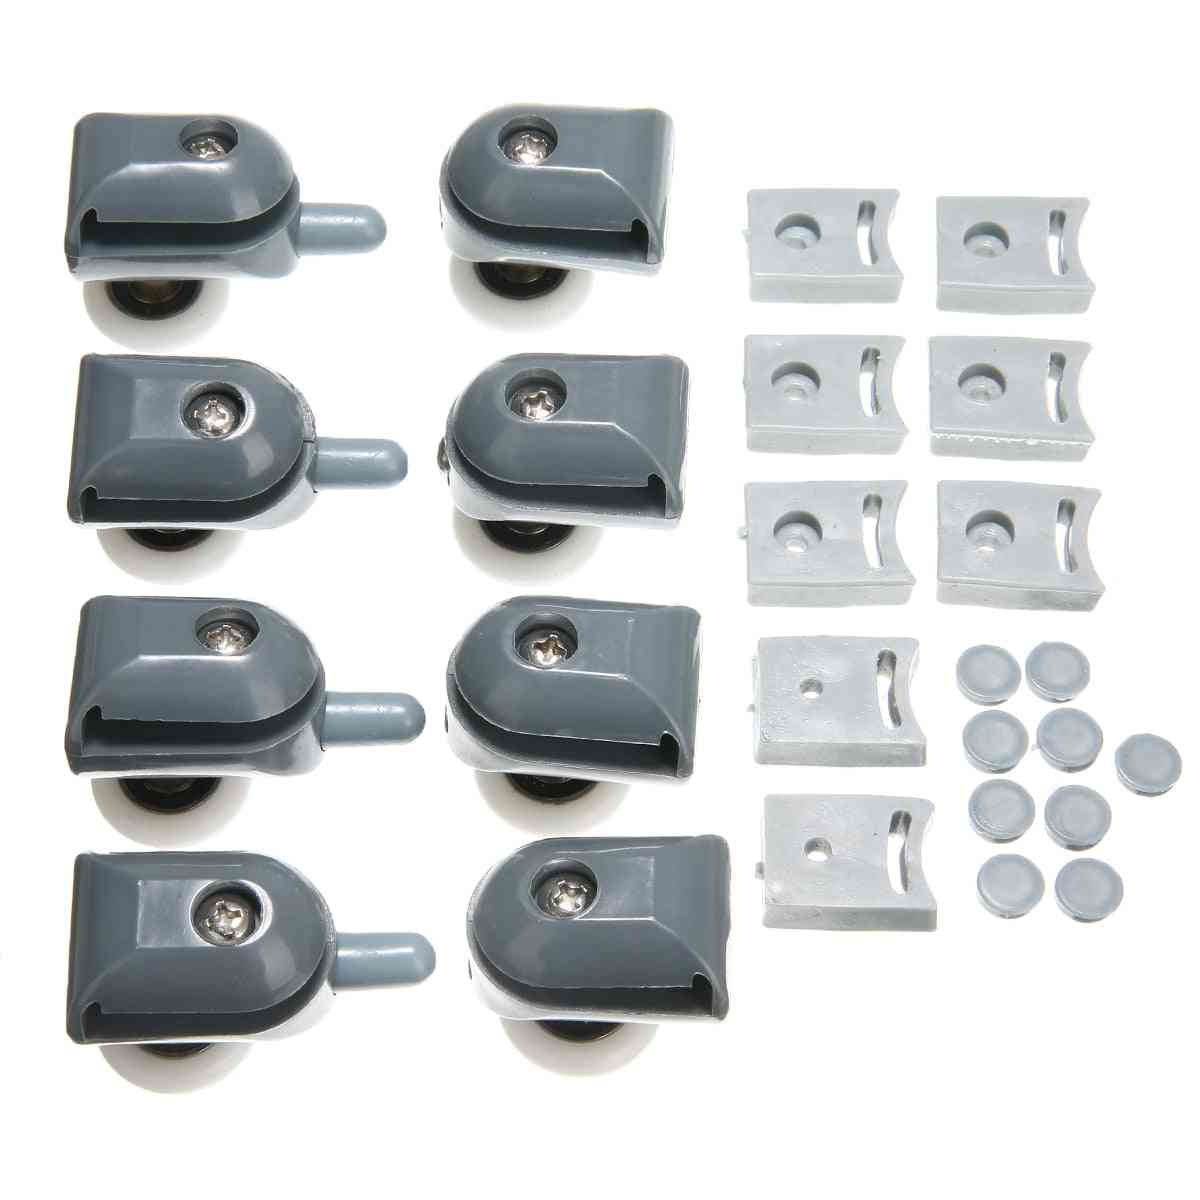 Replacement Wheel With Anti-collision Positioning Block Set